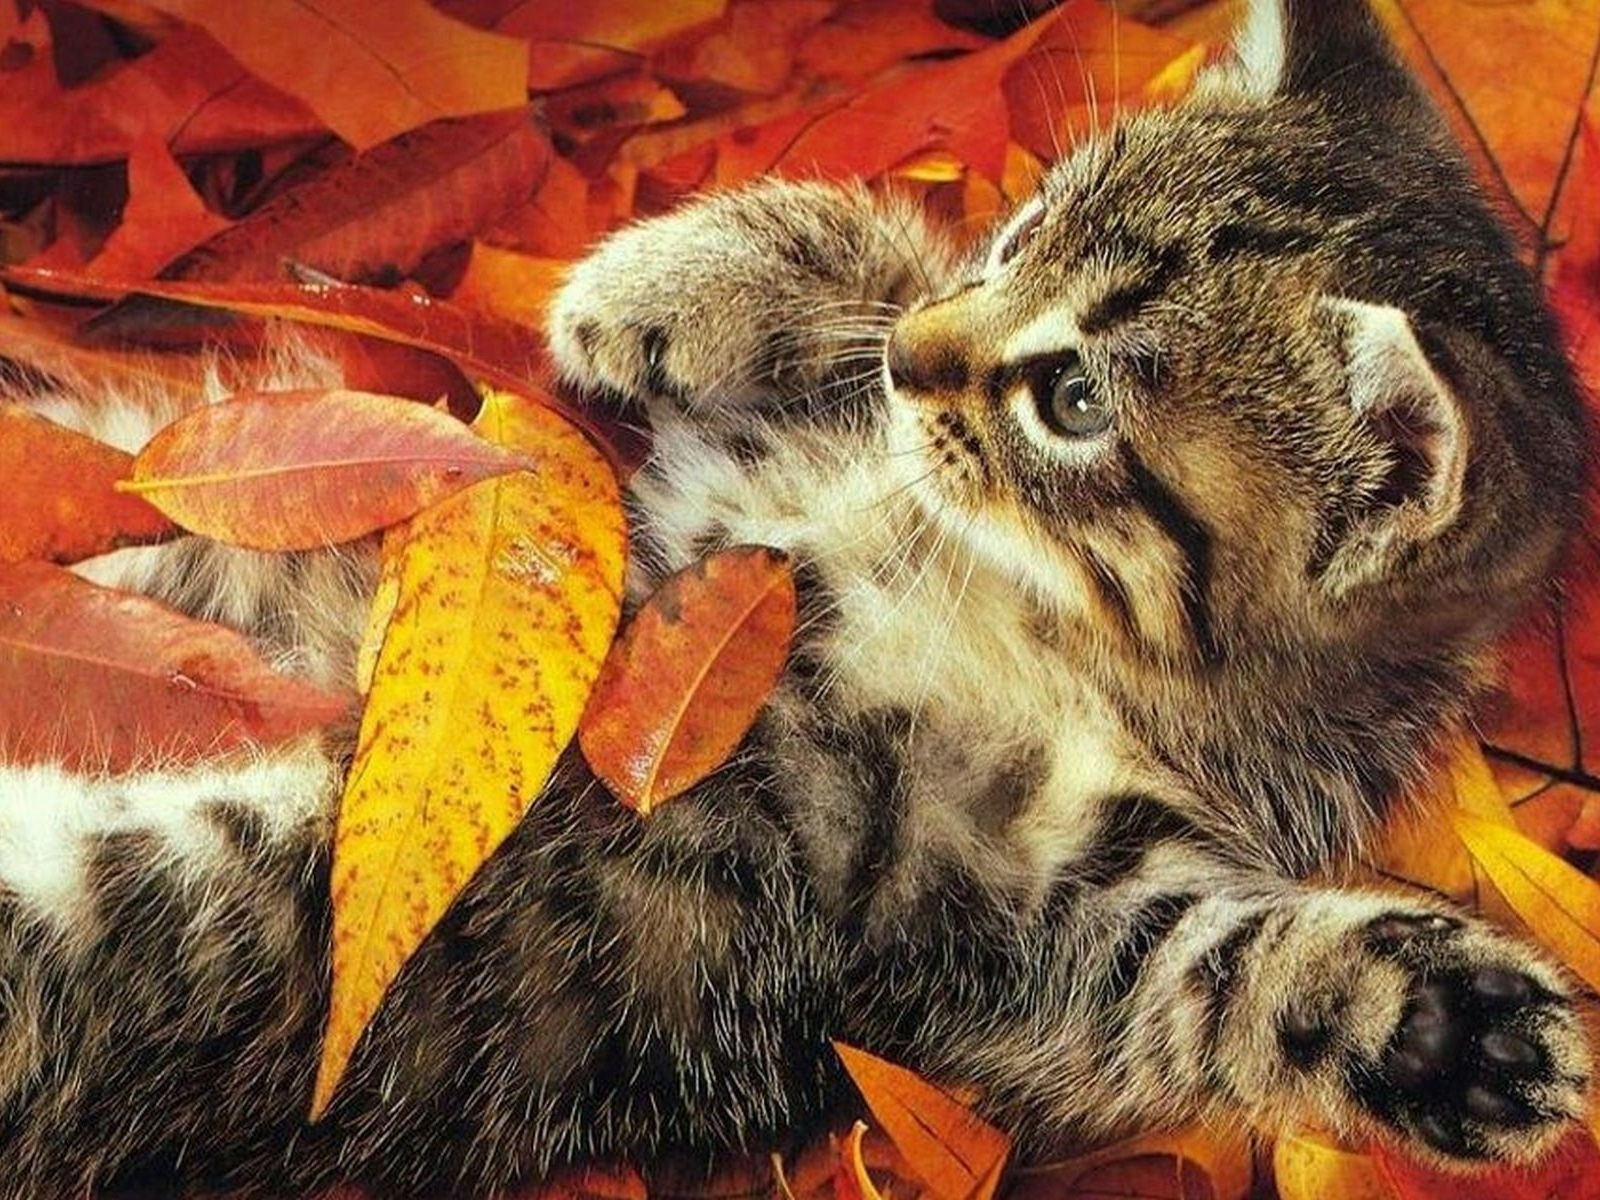 20232 download wallpaper Animals, Cats screensavers and pictures for free